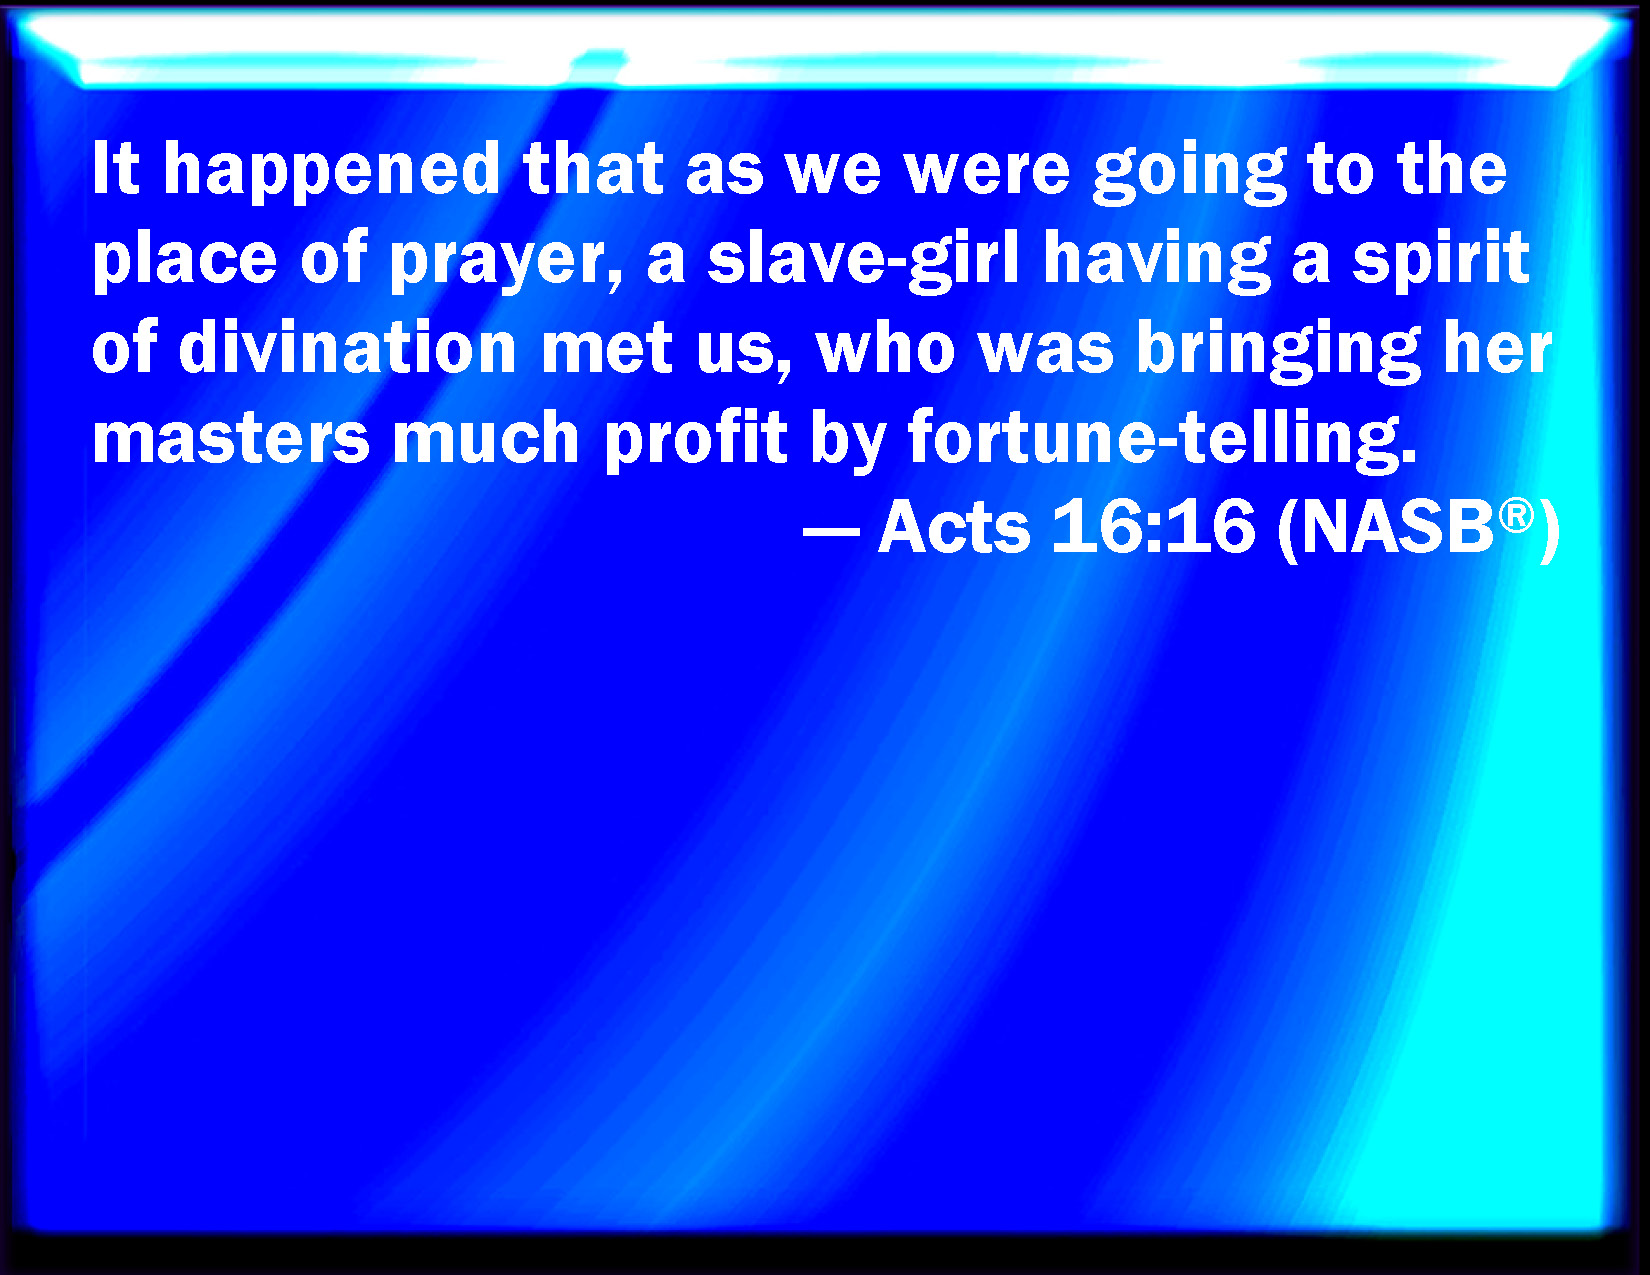 Acts 16:16 And it came to pass, as we went to prayer, a